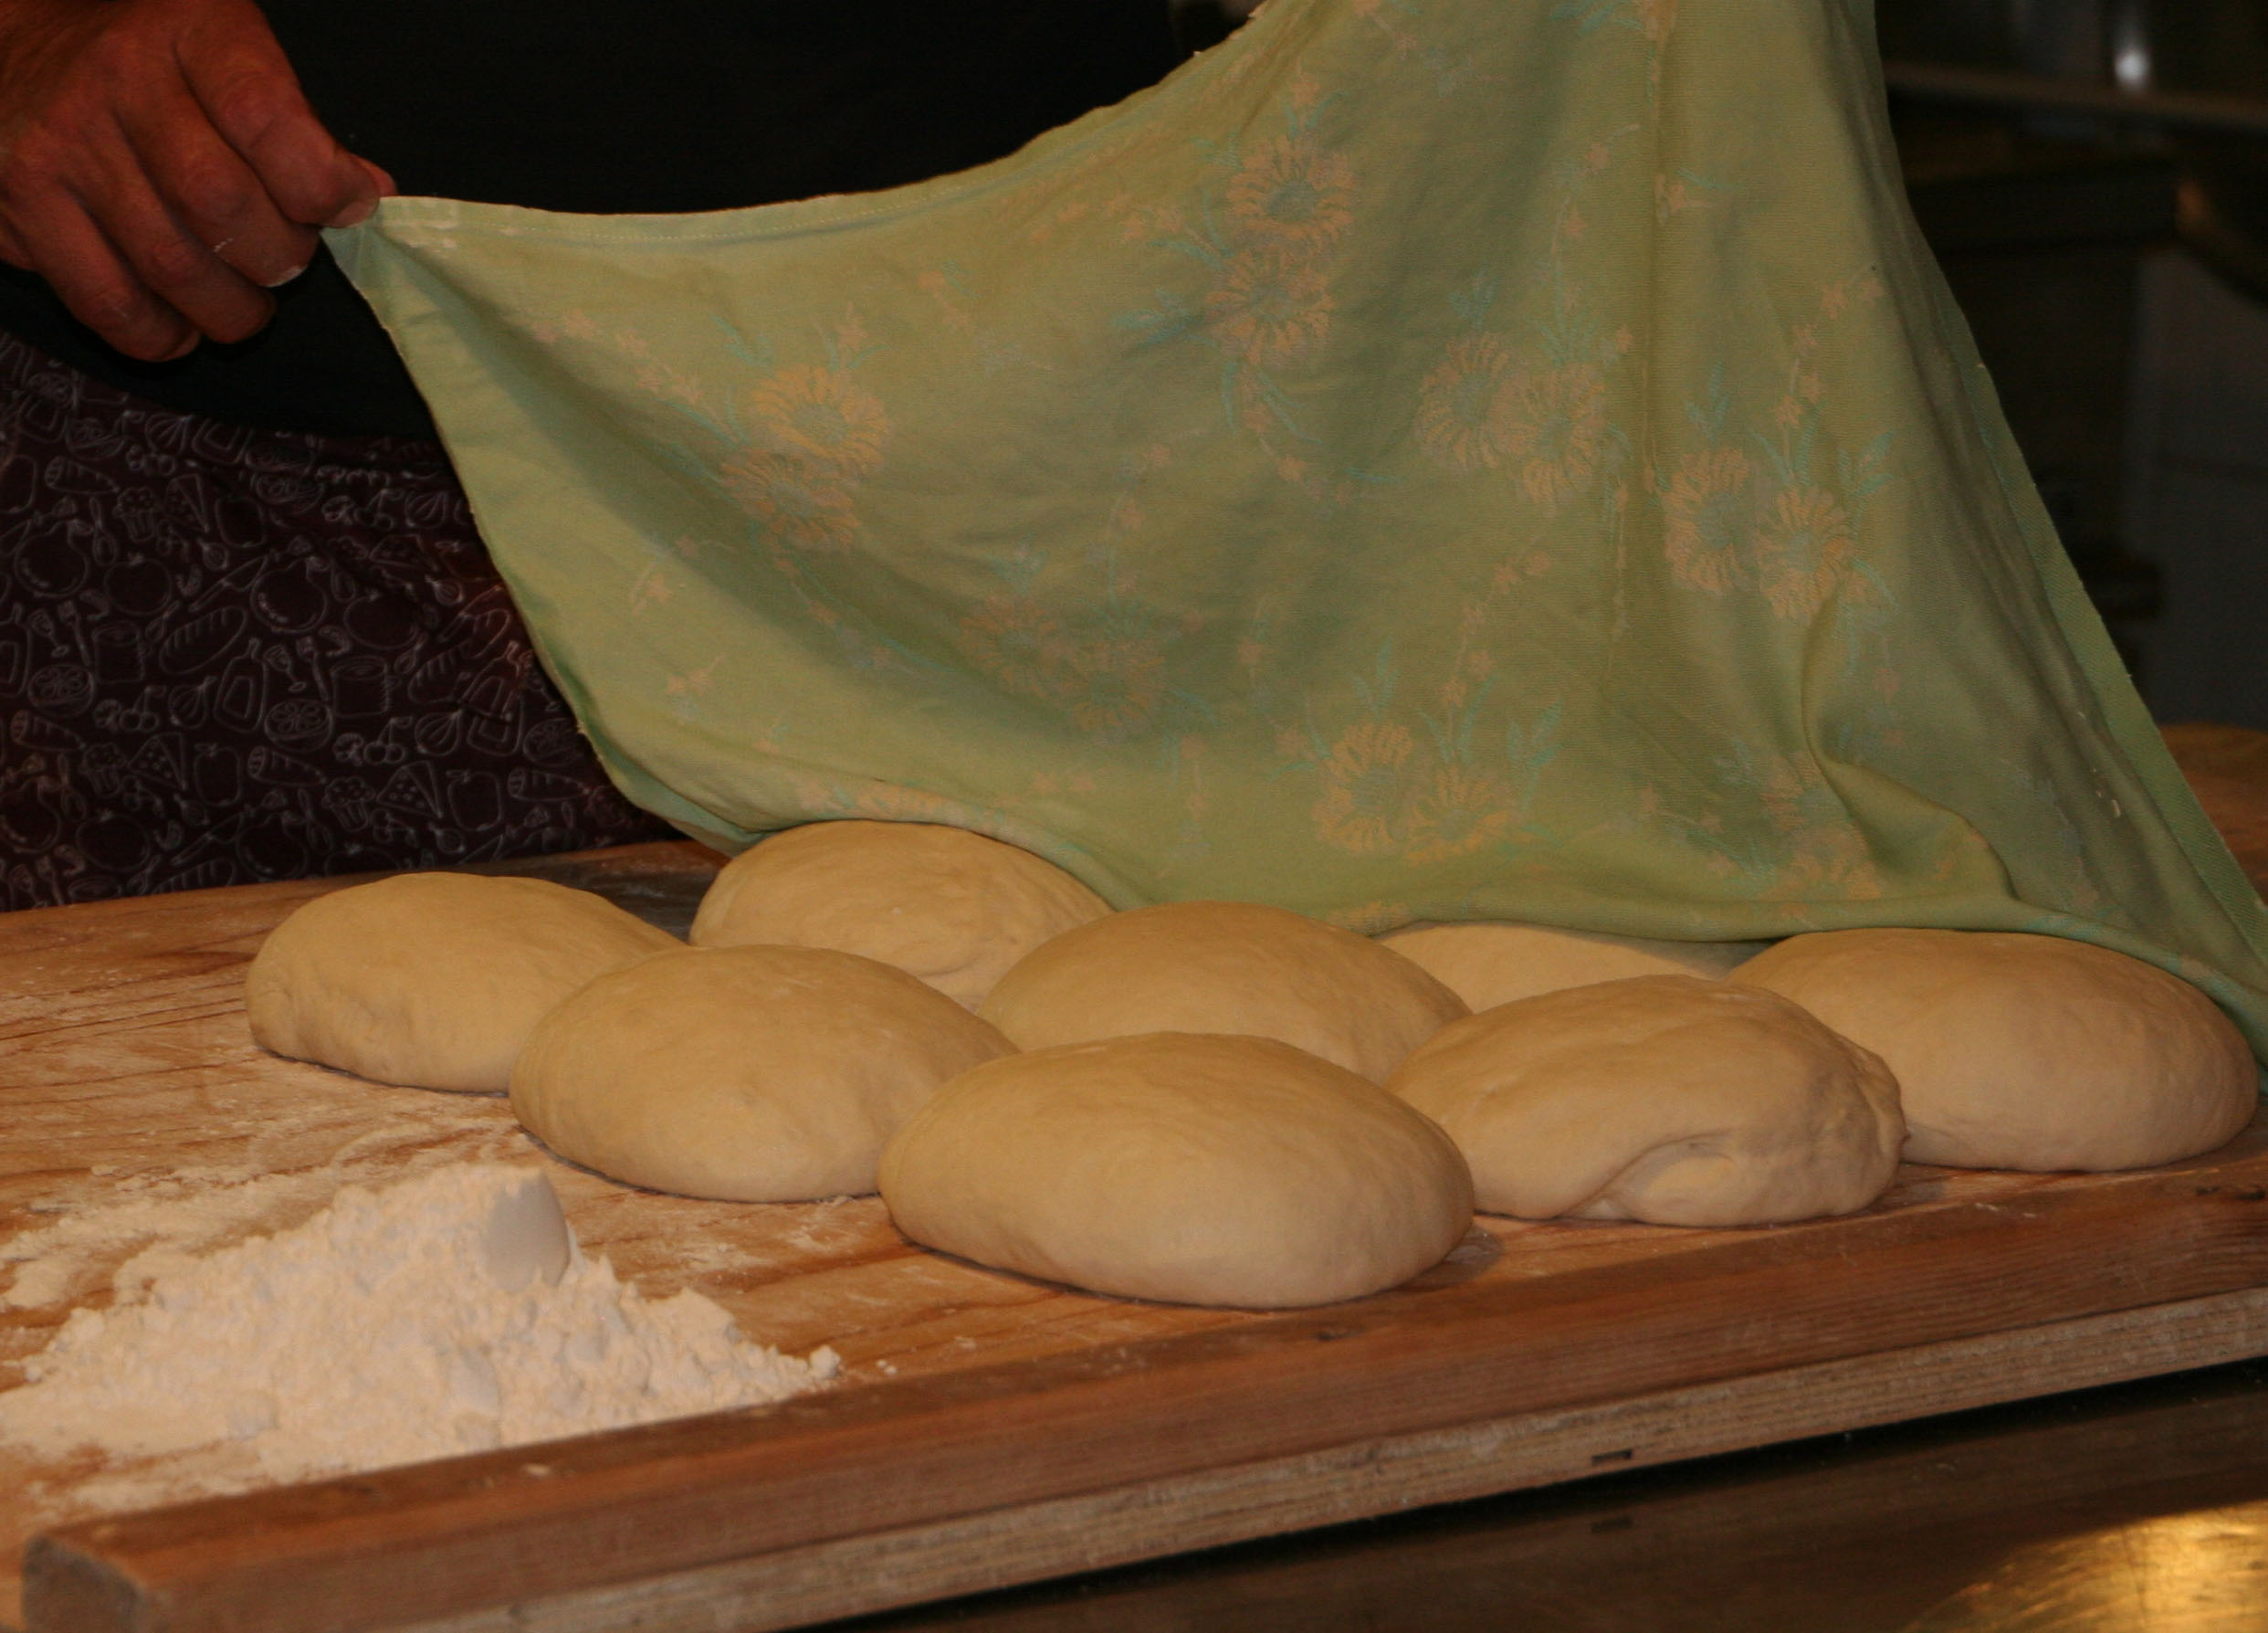 making the bread in the old traditional way